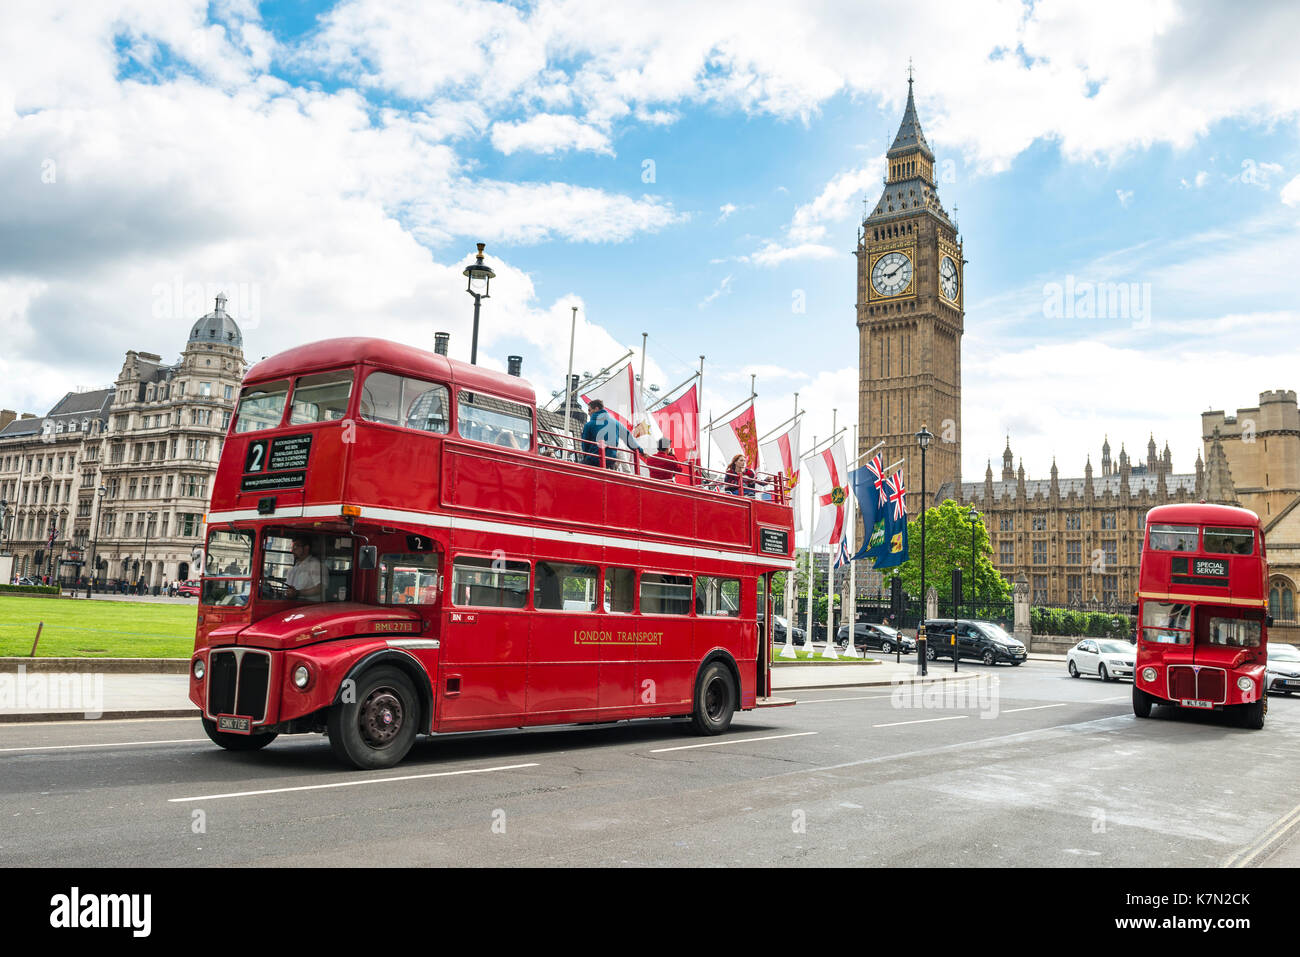 Red double-decker buses, Big Ben with Westminster Palace, London, England, Great Britain - Stock Image